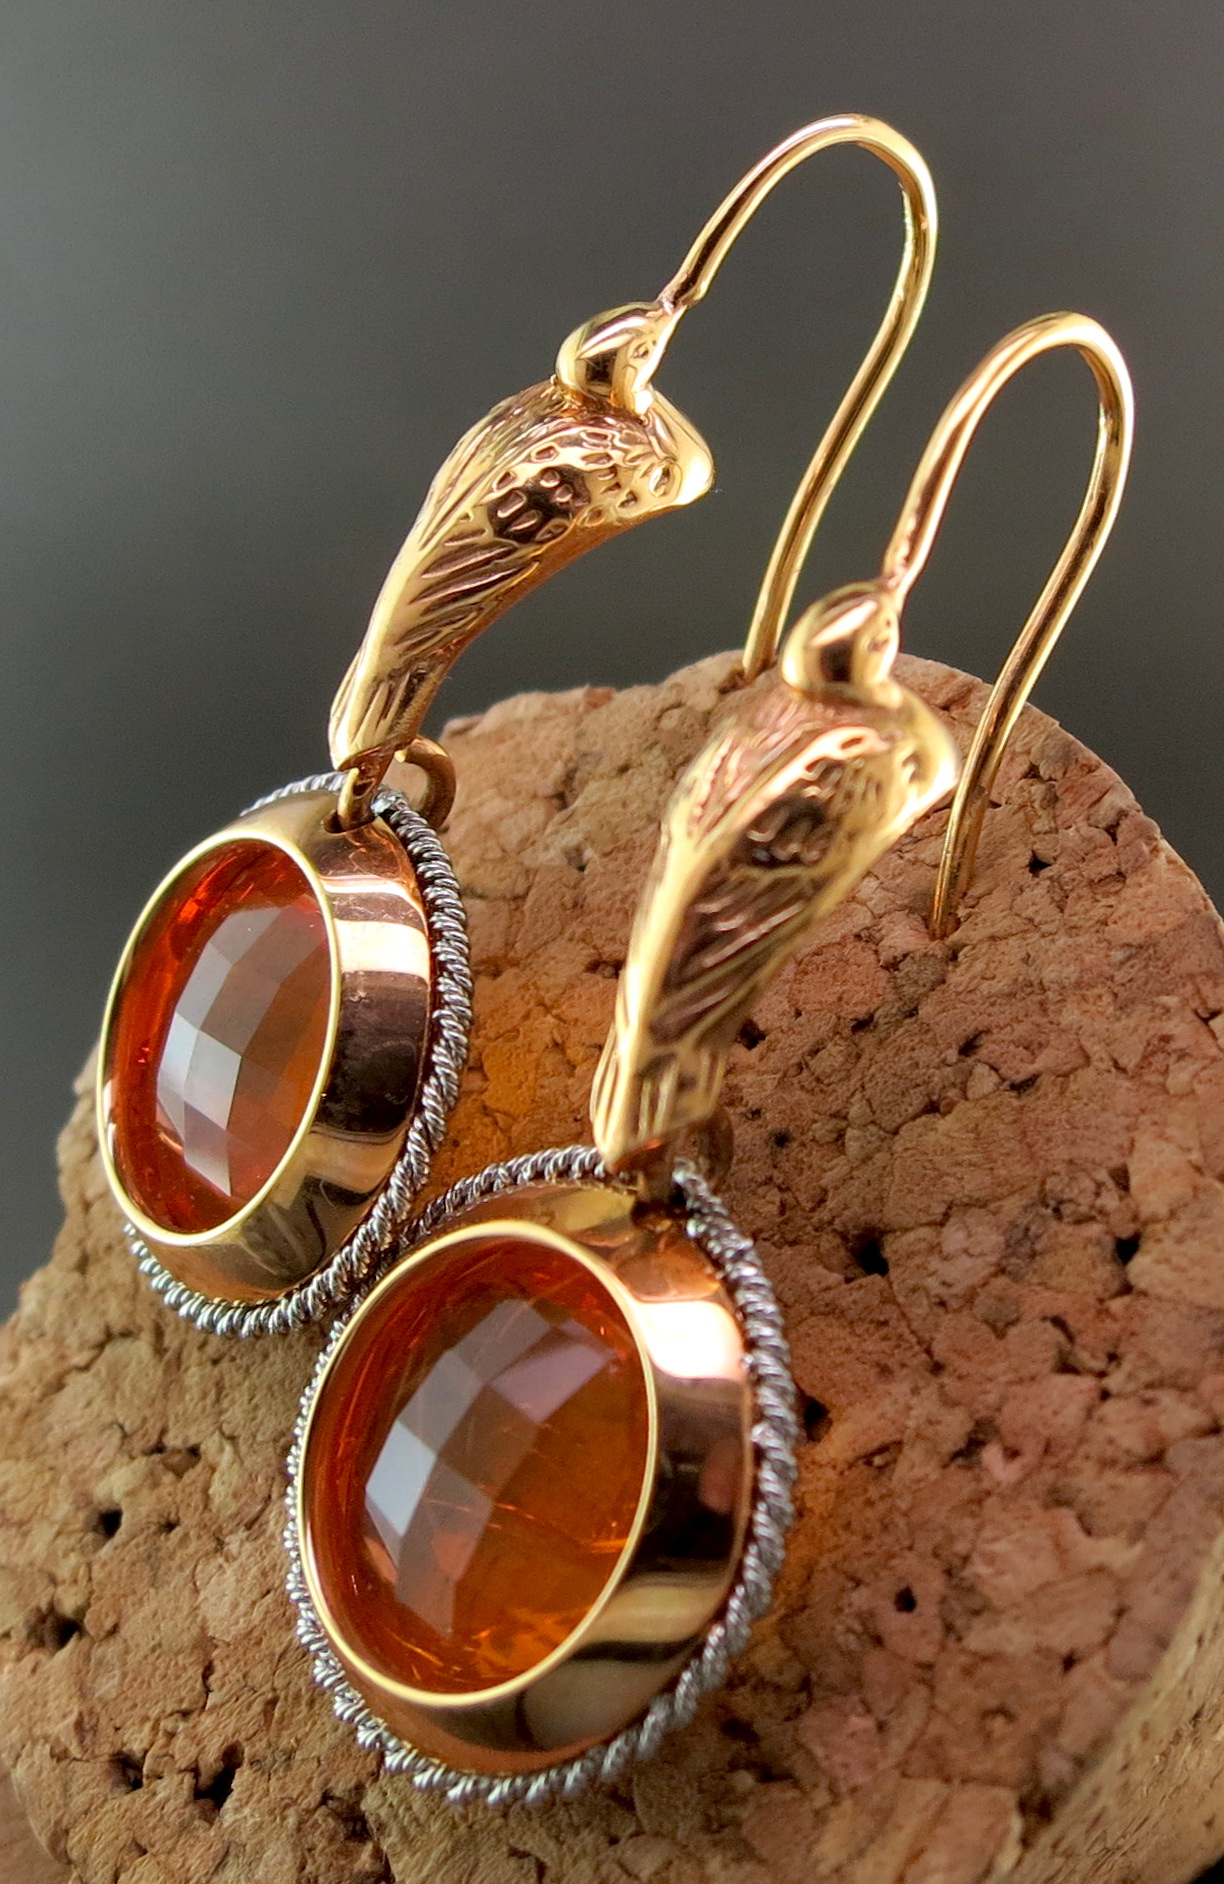 18 Karat Rose Gold, Platinum, and Mexican Opal Dangle Earrings (MB526)